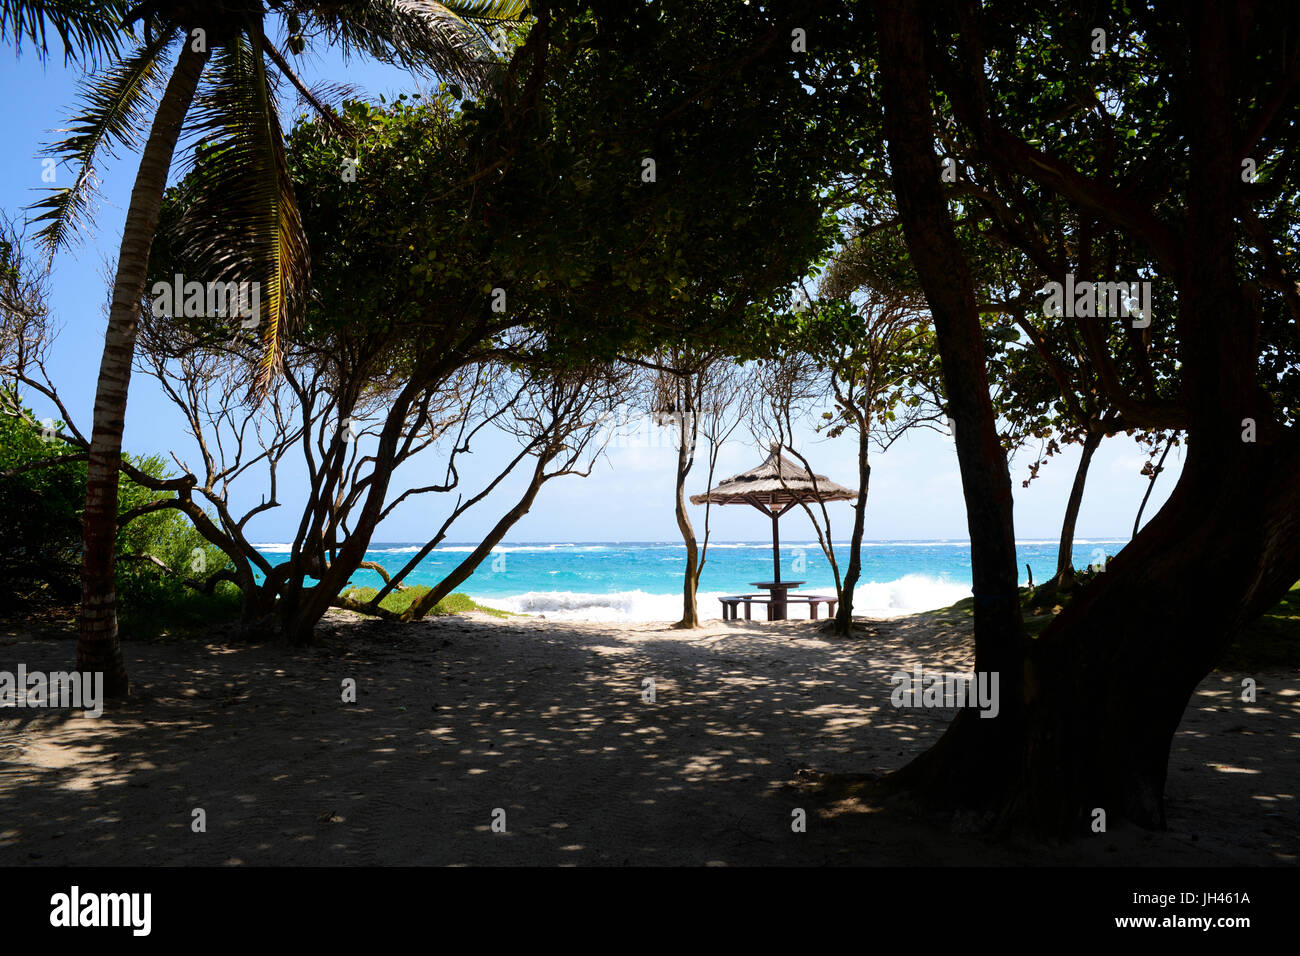 Approach to Macaroni Beach, viewed through trees, showing turquoise blue water and tiki style beach umbrella Stock Photo